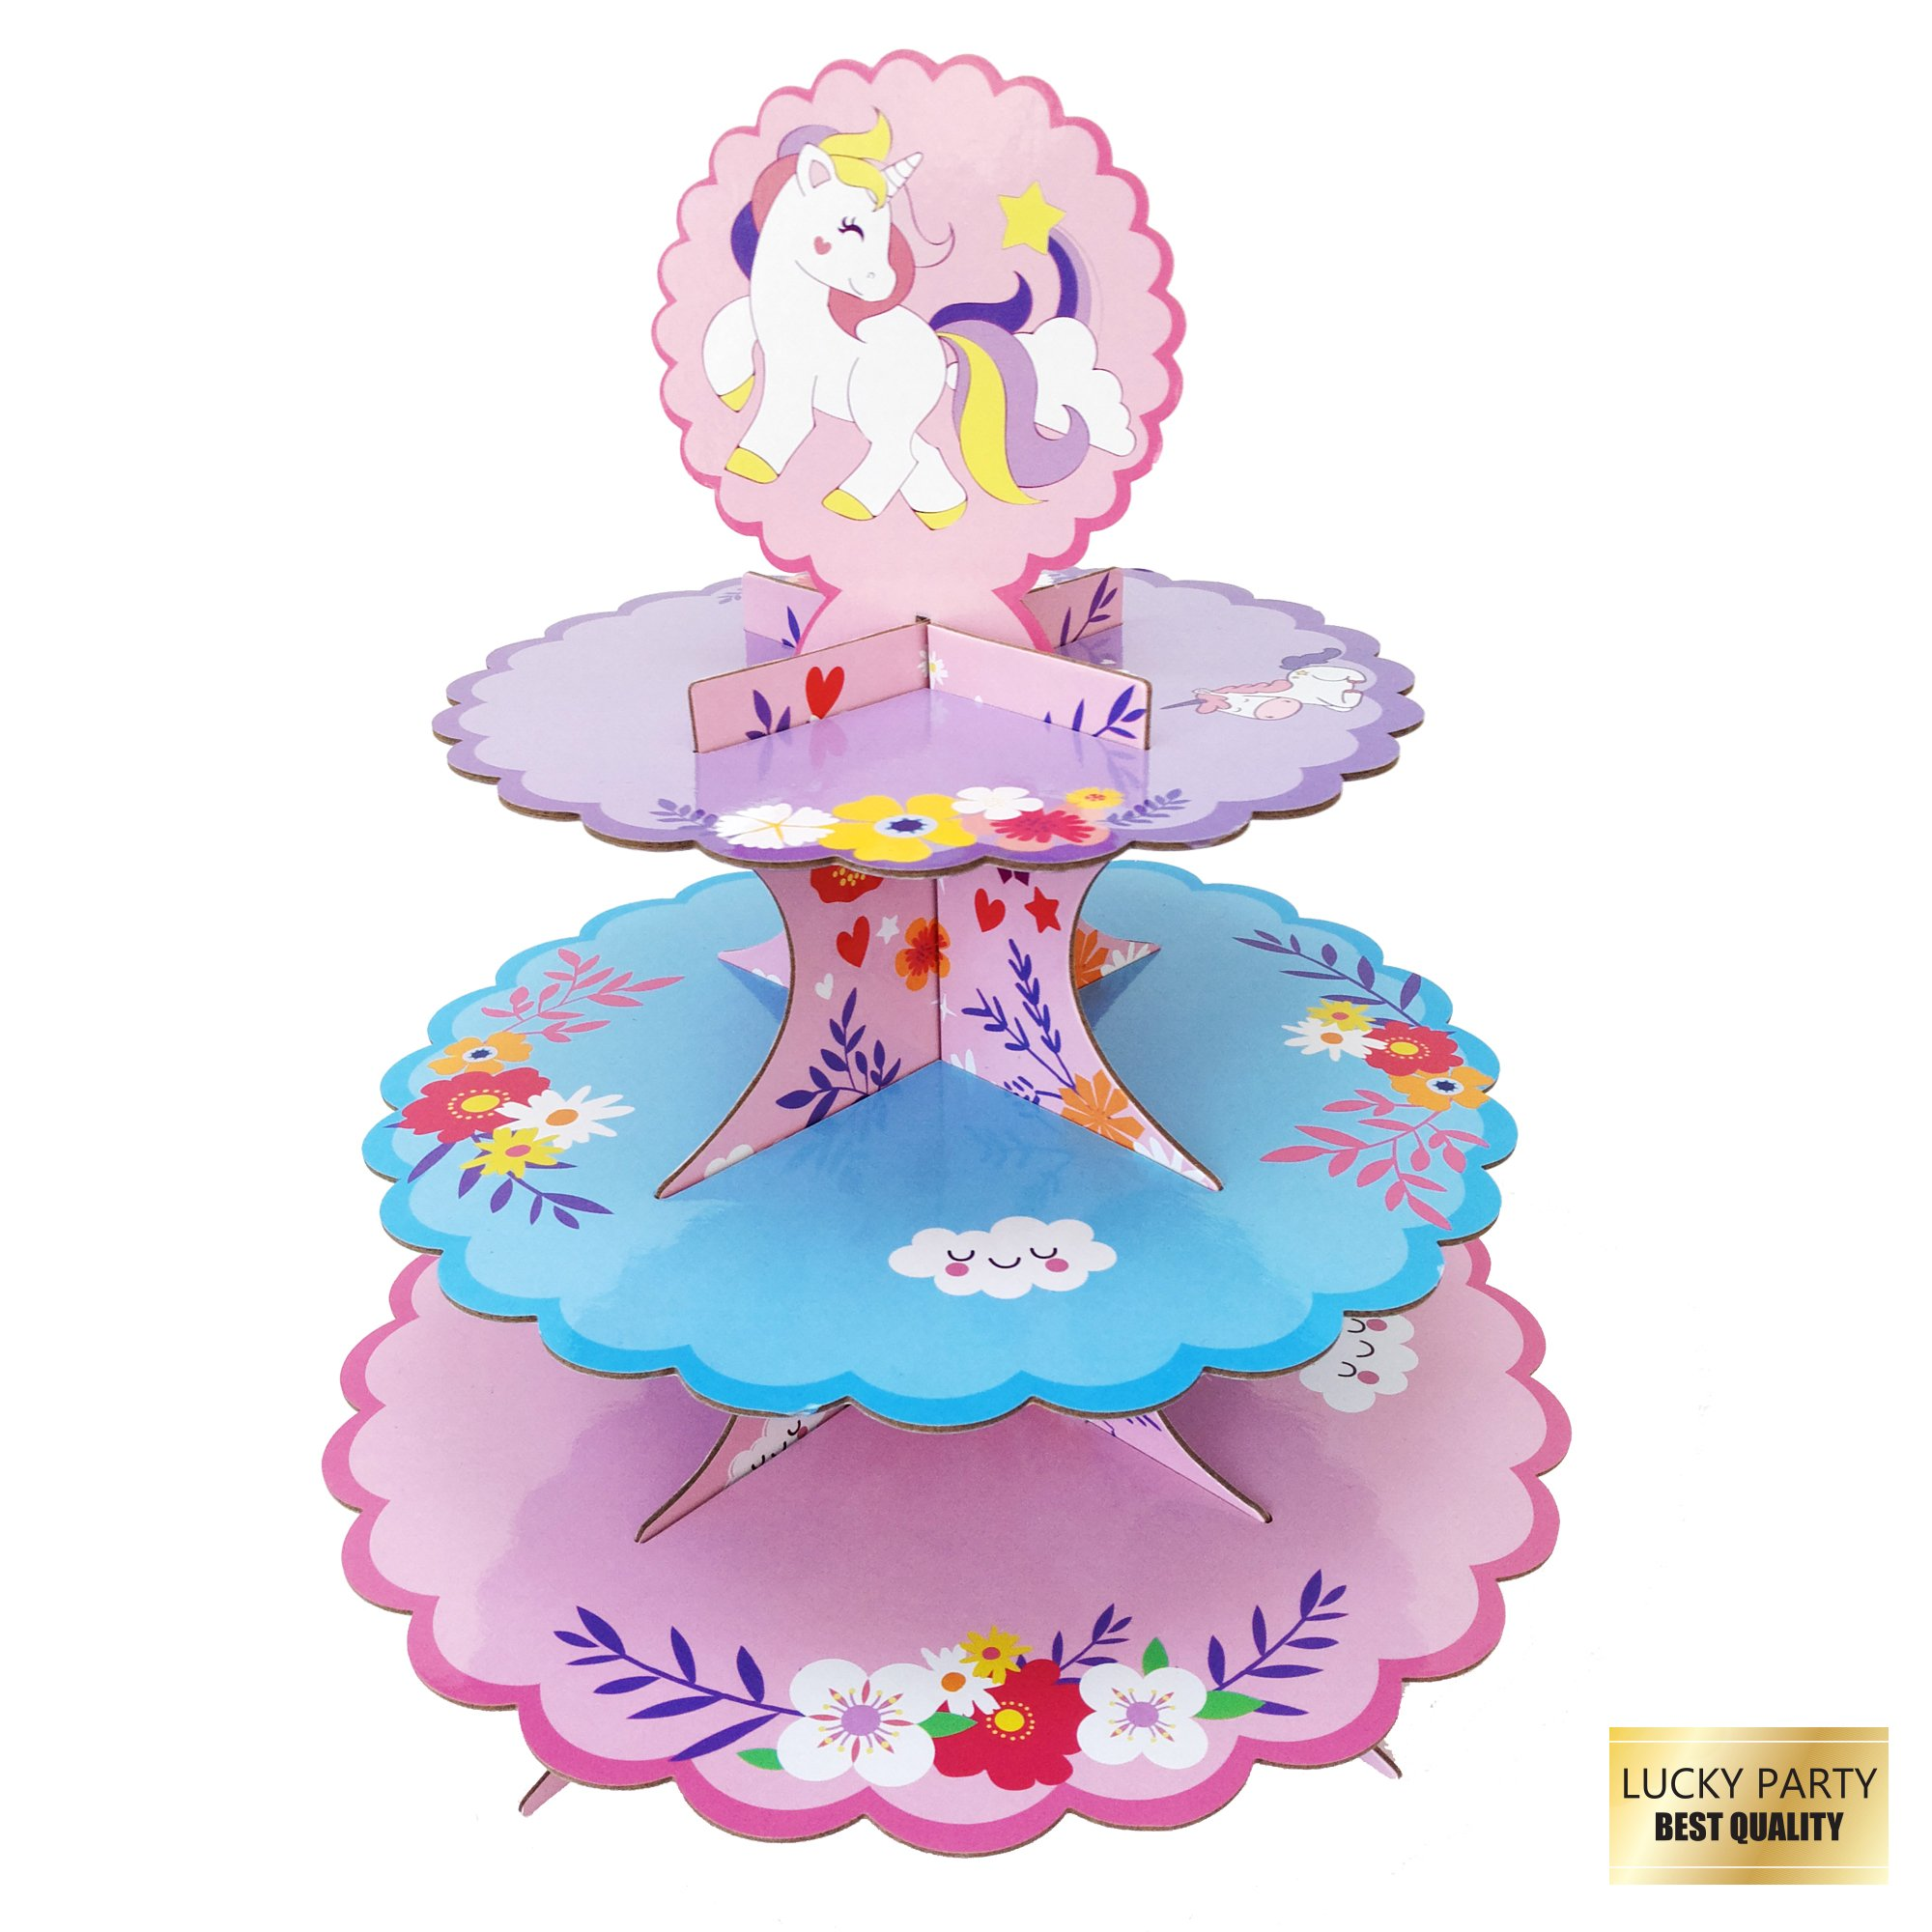 3-Tier Unicorn Cardboard Cupcake Stand Tower Display Cupcake Stand Dessert Cupcake Holder for Baby Shower, Gender Reveal Party, Kids Birthday Party or Unicorn Themed Party - 12 inches by Lucky Party